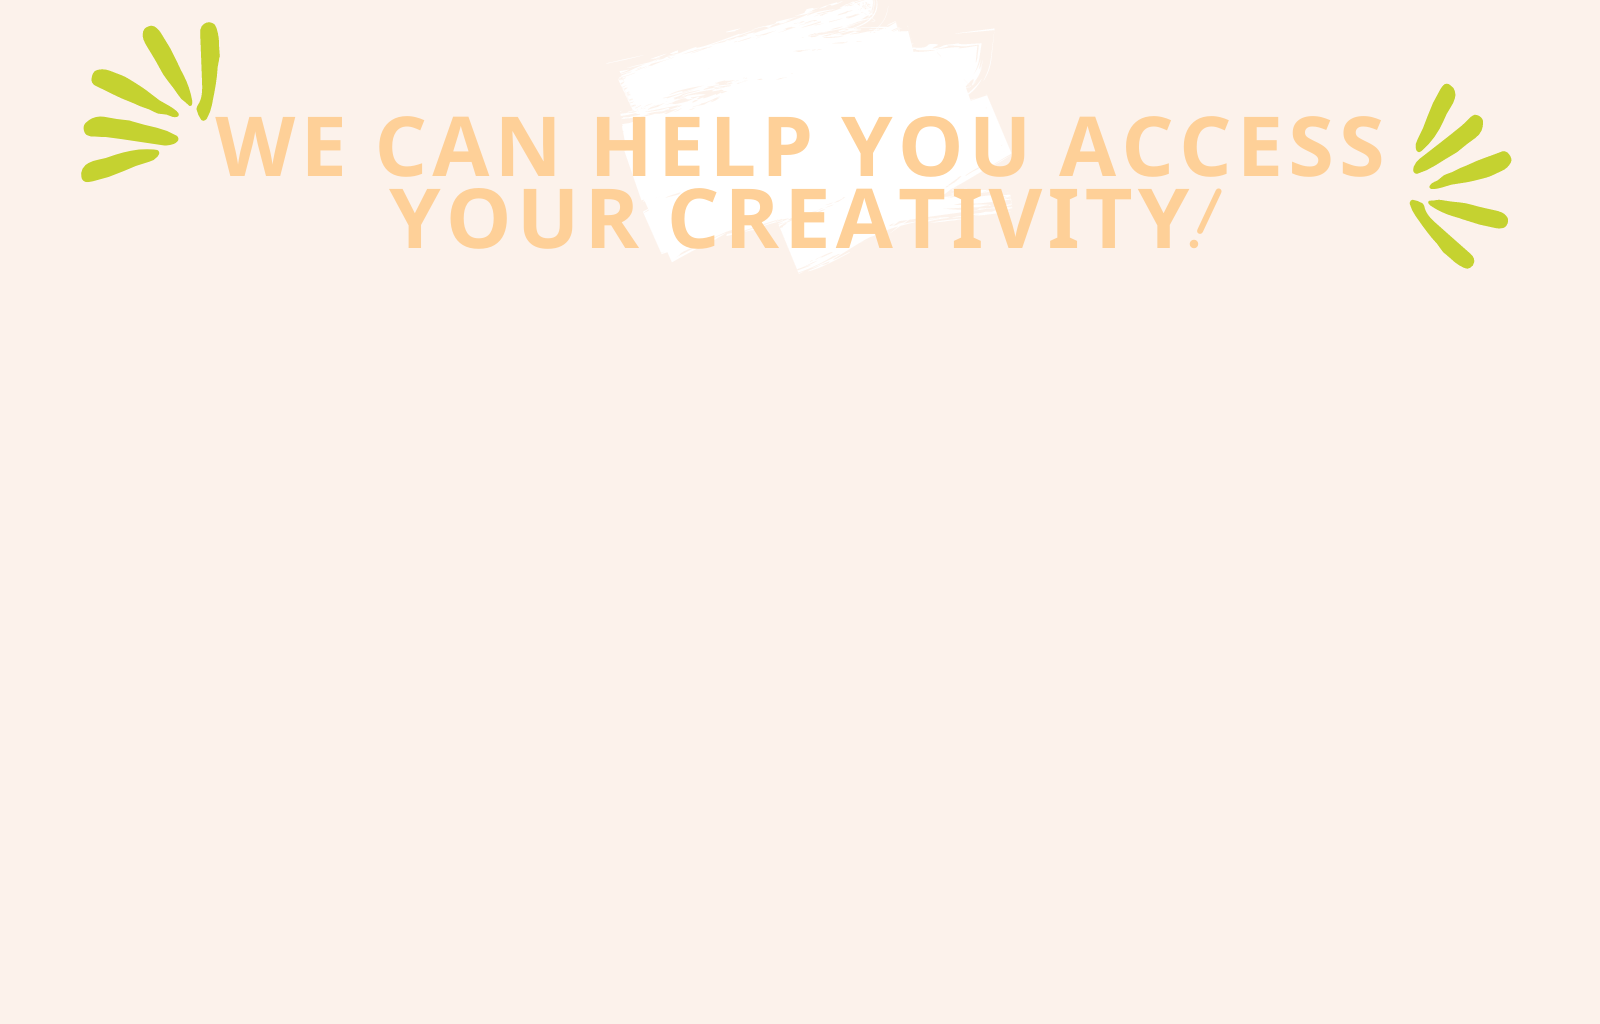 we can help you access your creativity